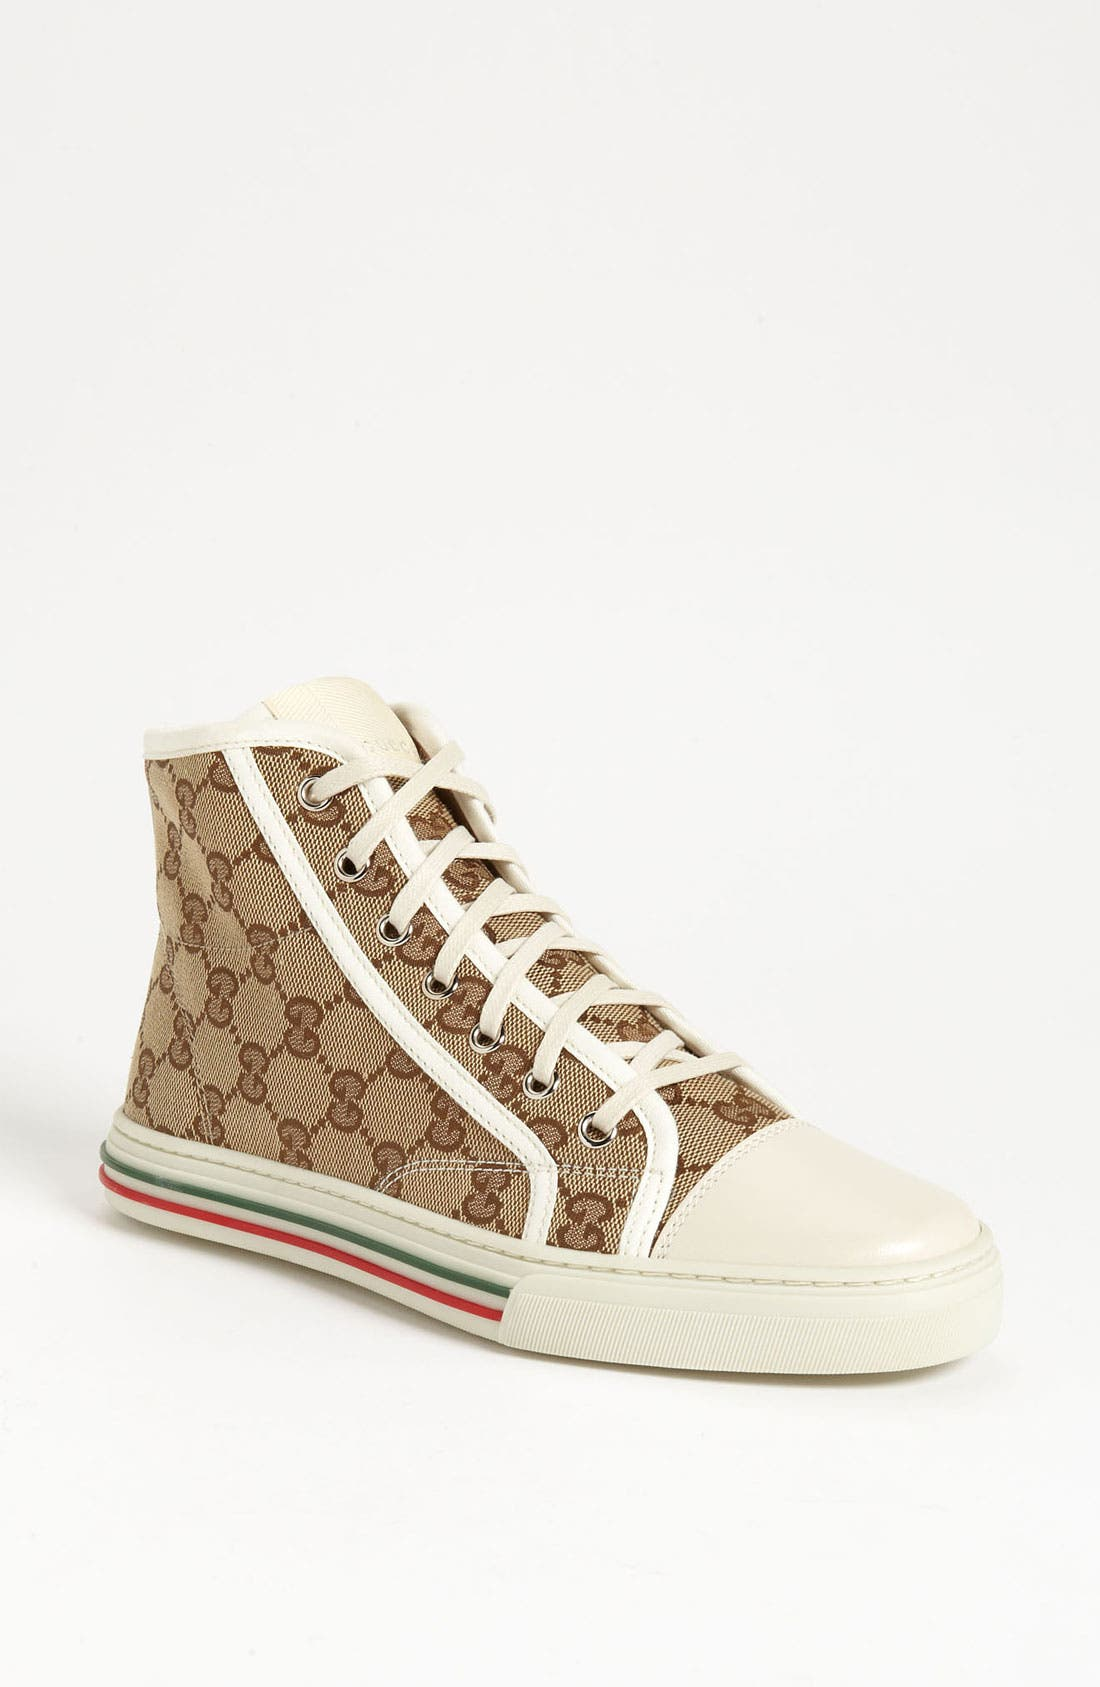 Alternate Image 1 Selected - Gucci 'California' High Top Sneaker